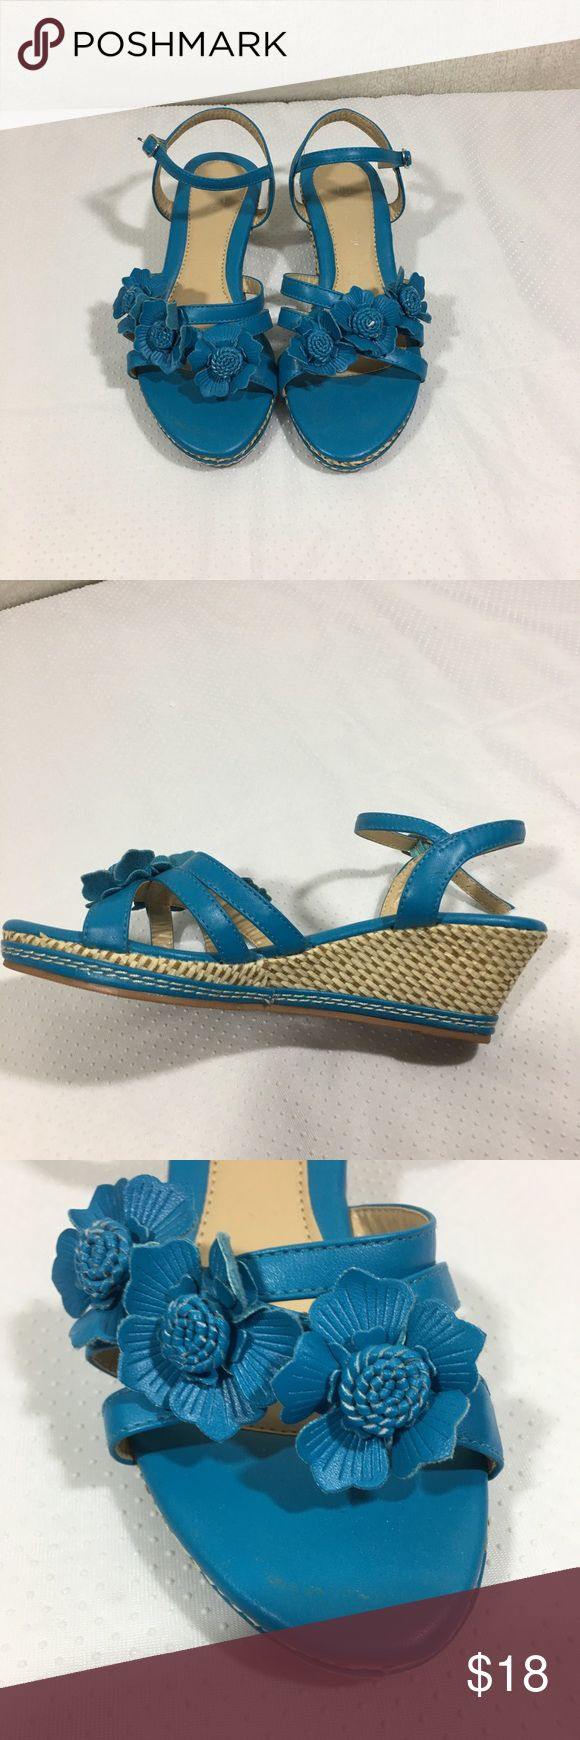 Forever Teal Sandal Size 6 1/2 In good condition wedge sandal very comfortable Brand is forever Forever Unique Shoes Sandals